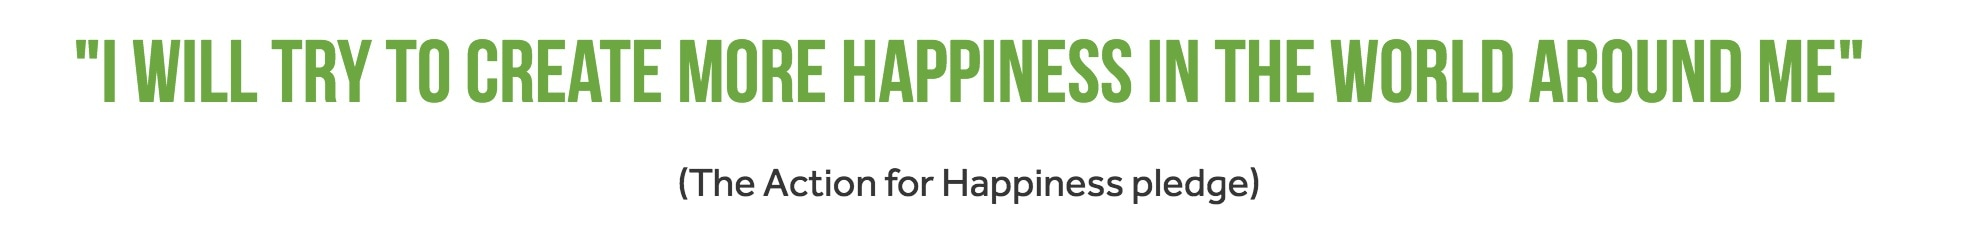 International Day of Happiness pledge